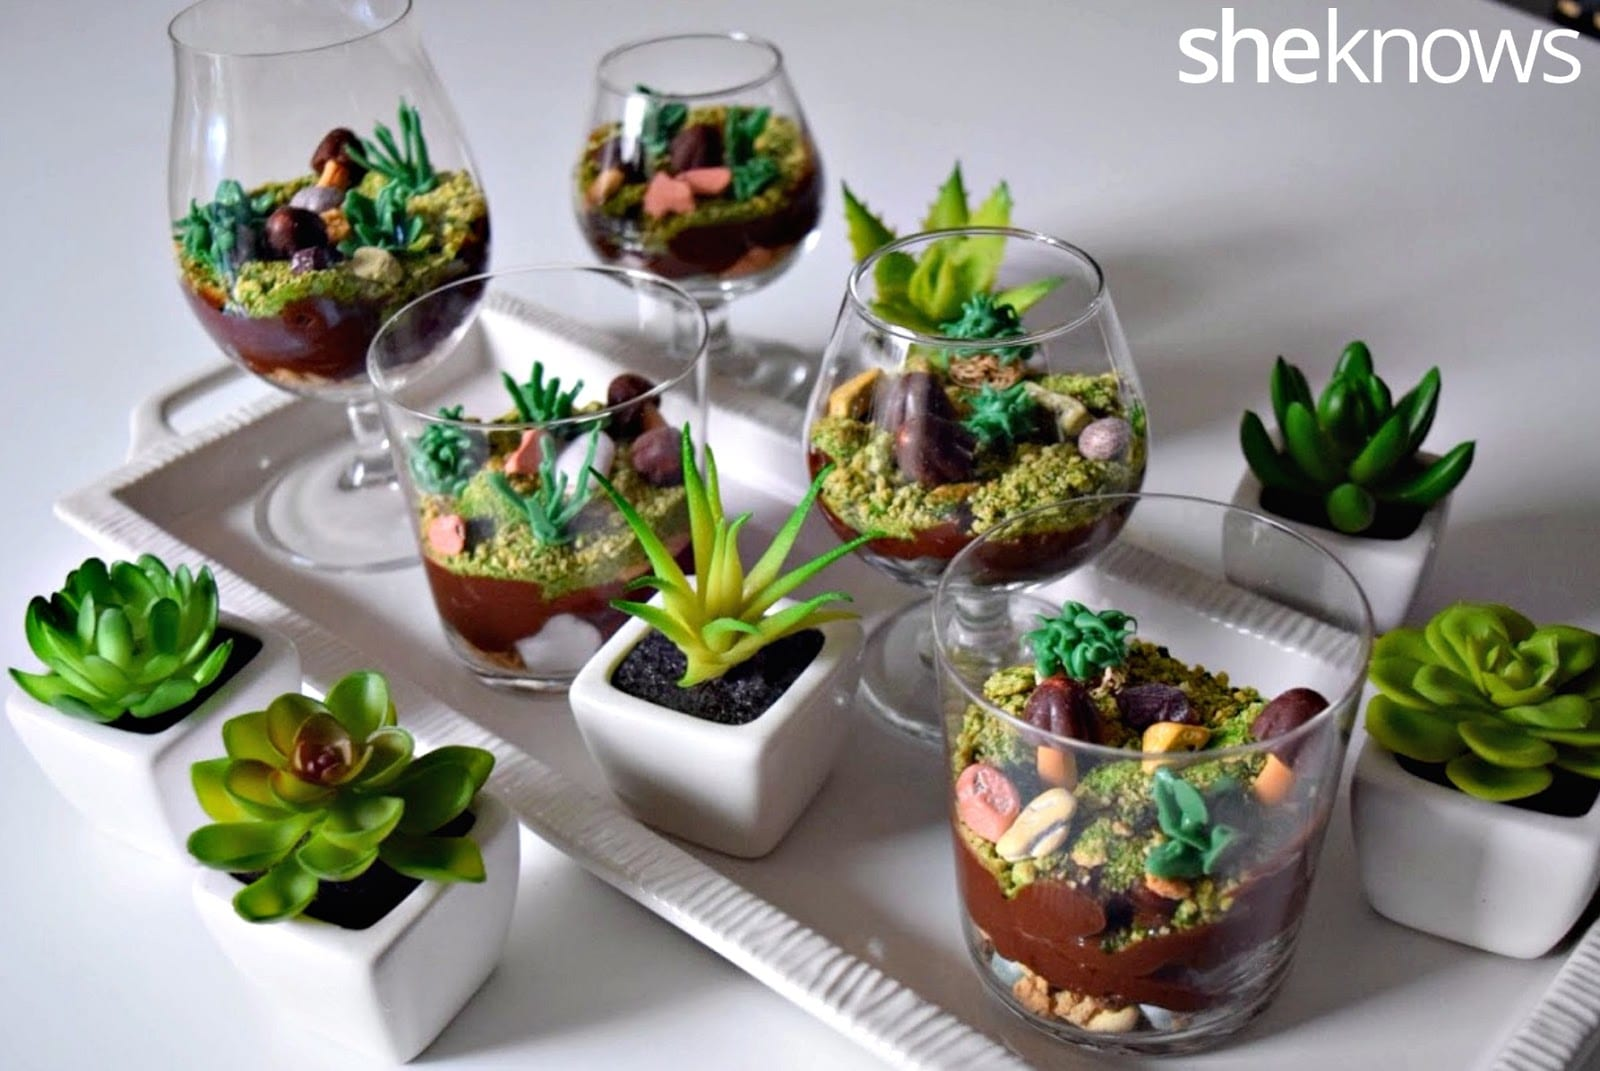 Tinker Zone: Edible Terrariums